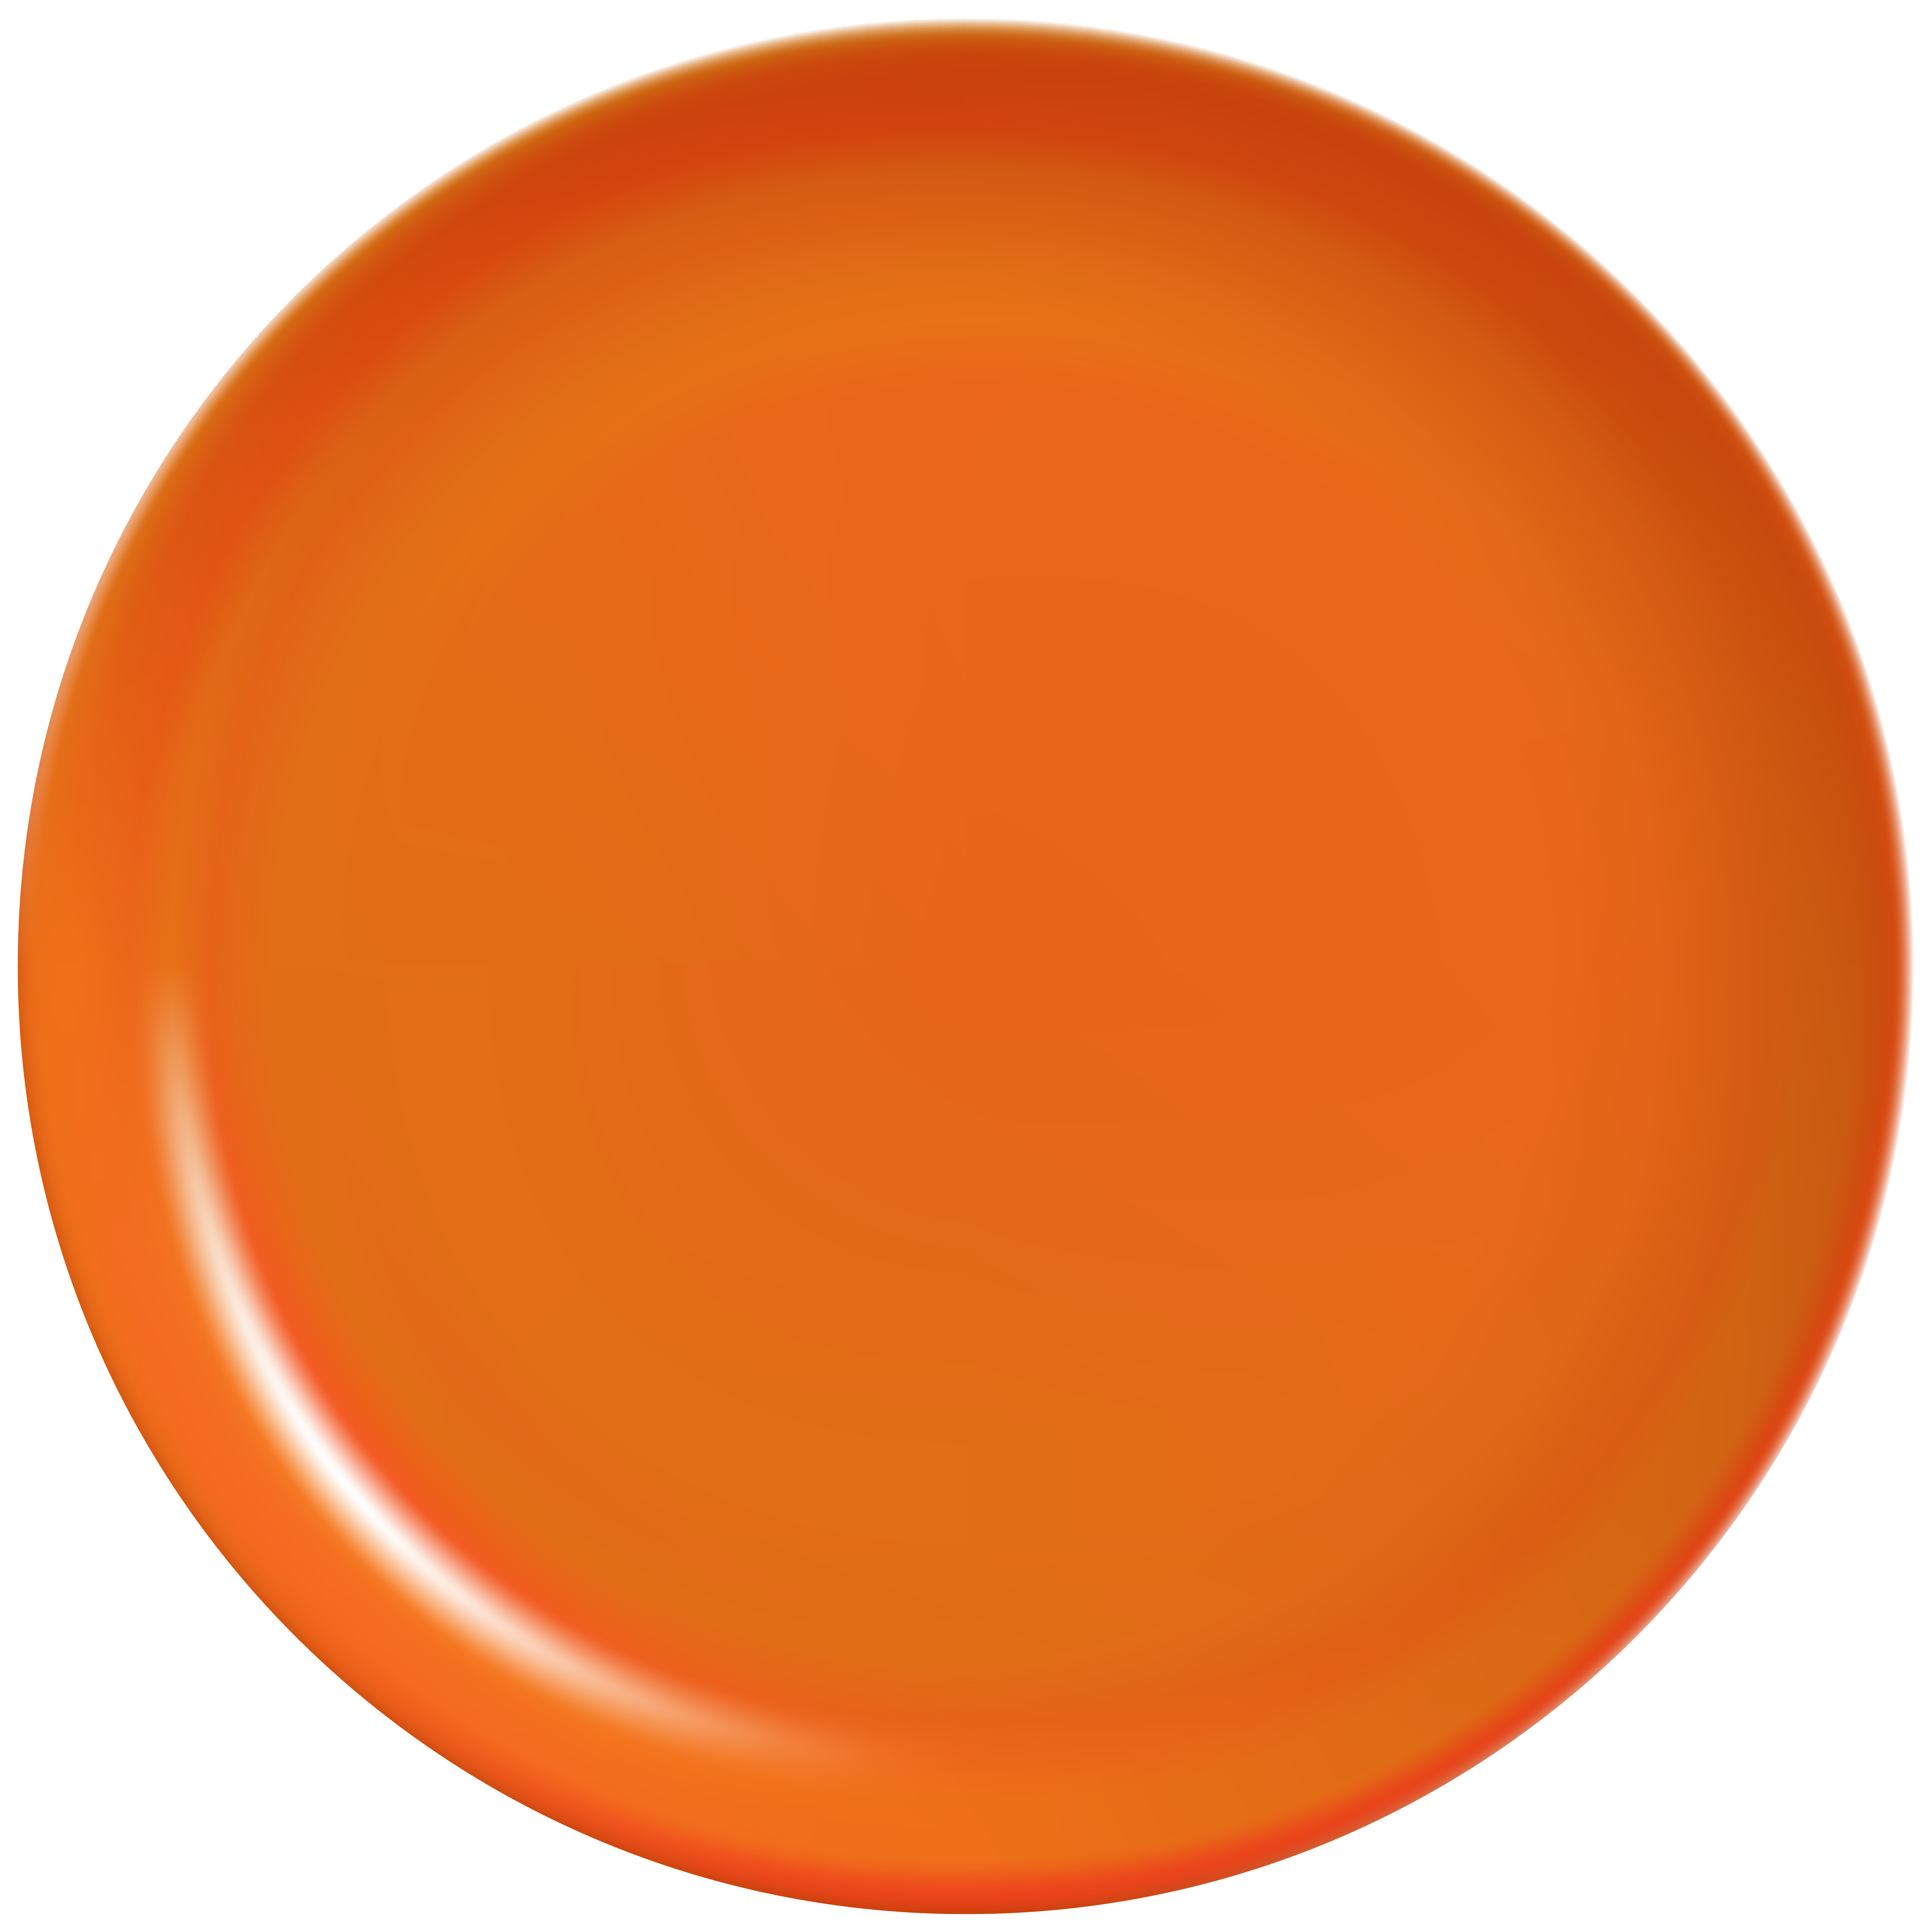 Orange clip art best. Plate clipart png vector free download